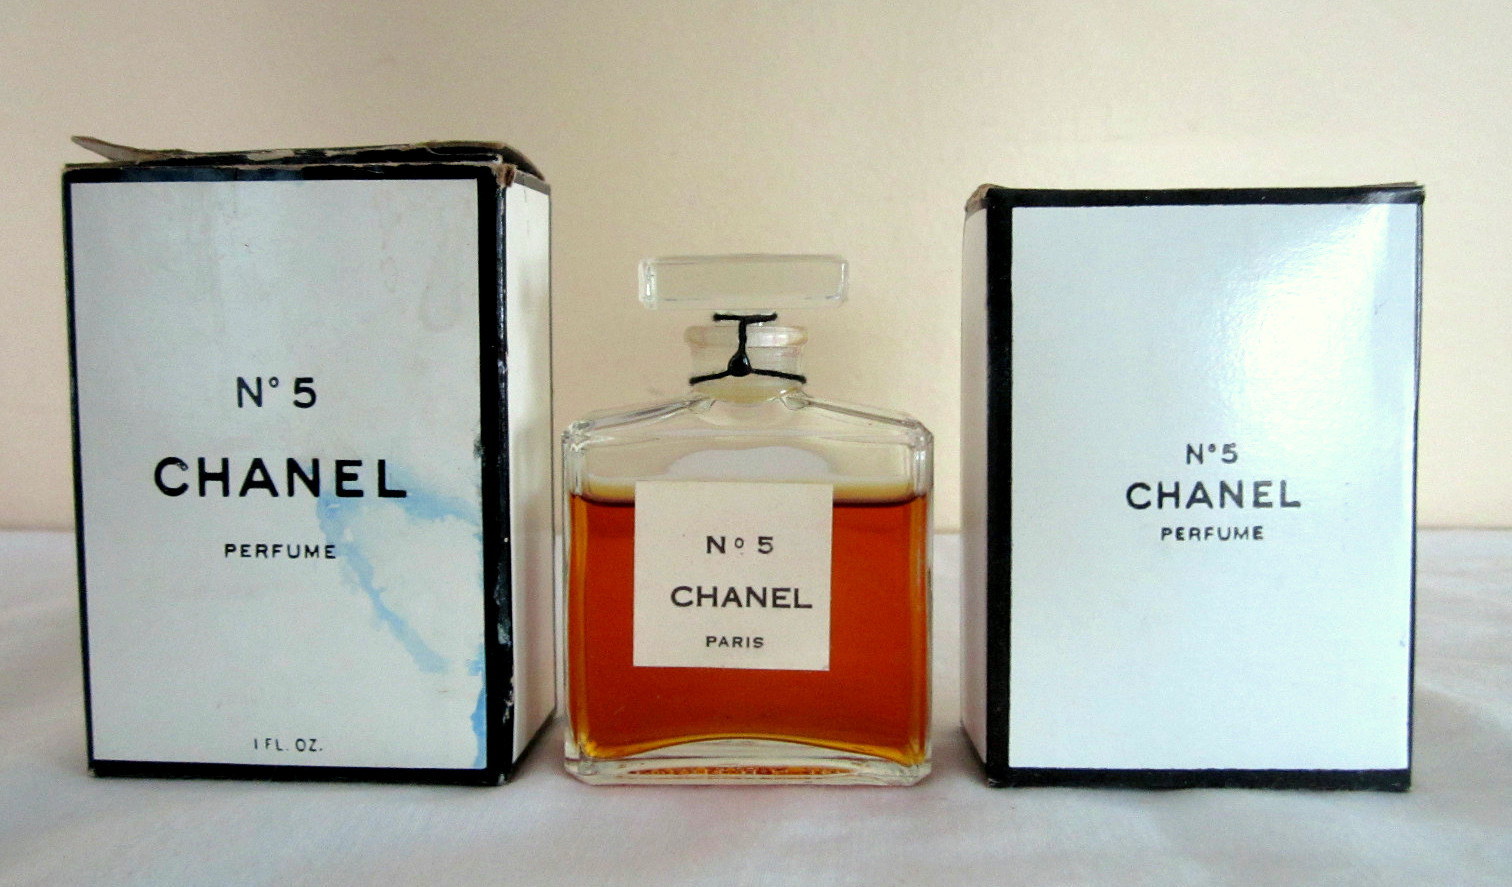 dating chanel no 5 bottles If you are interested in finding out the recommended date of expiration you wouldn't believe the number of bottles over the years i've received as the perfume still smells good, even though i had it for about 4-5 years.